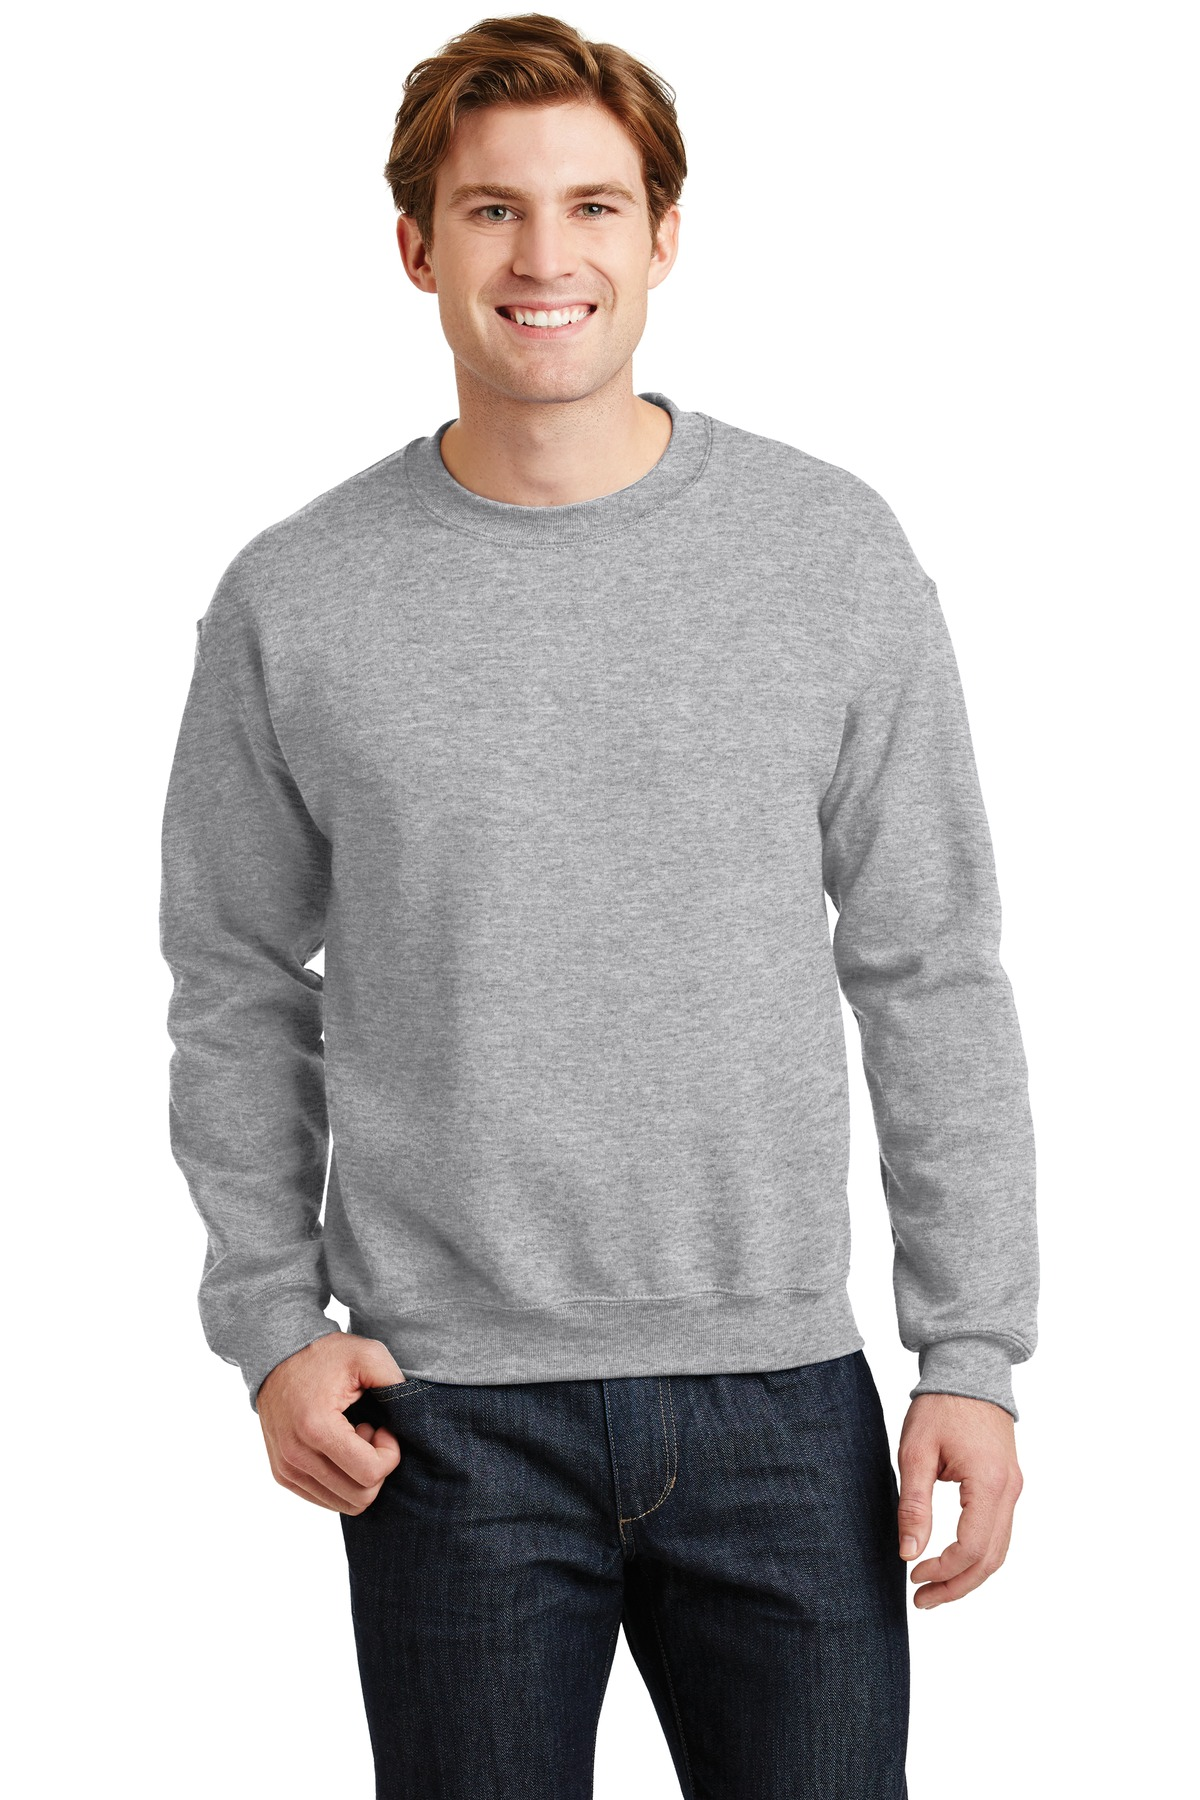 Gildan ®  - Heavy Blend™ Crewneck Sweatshirt.  18000 - Sport Grey